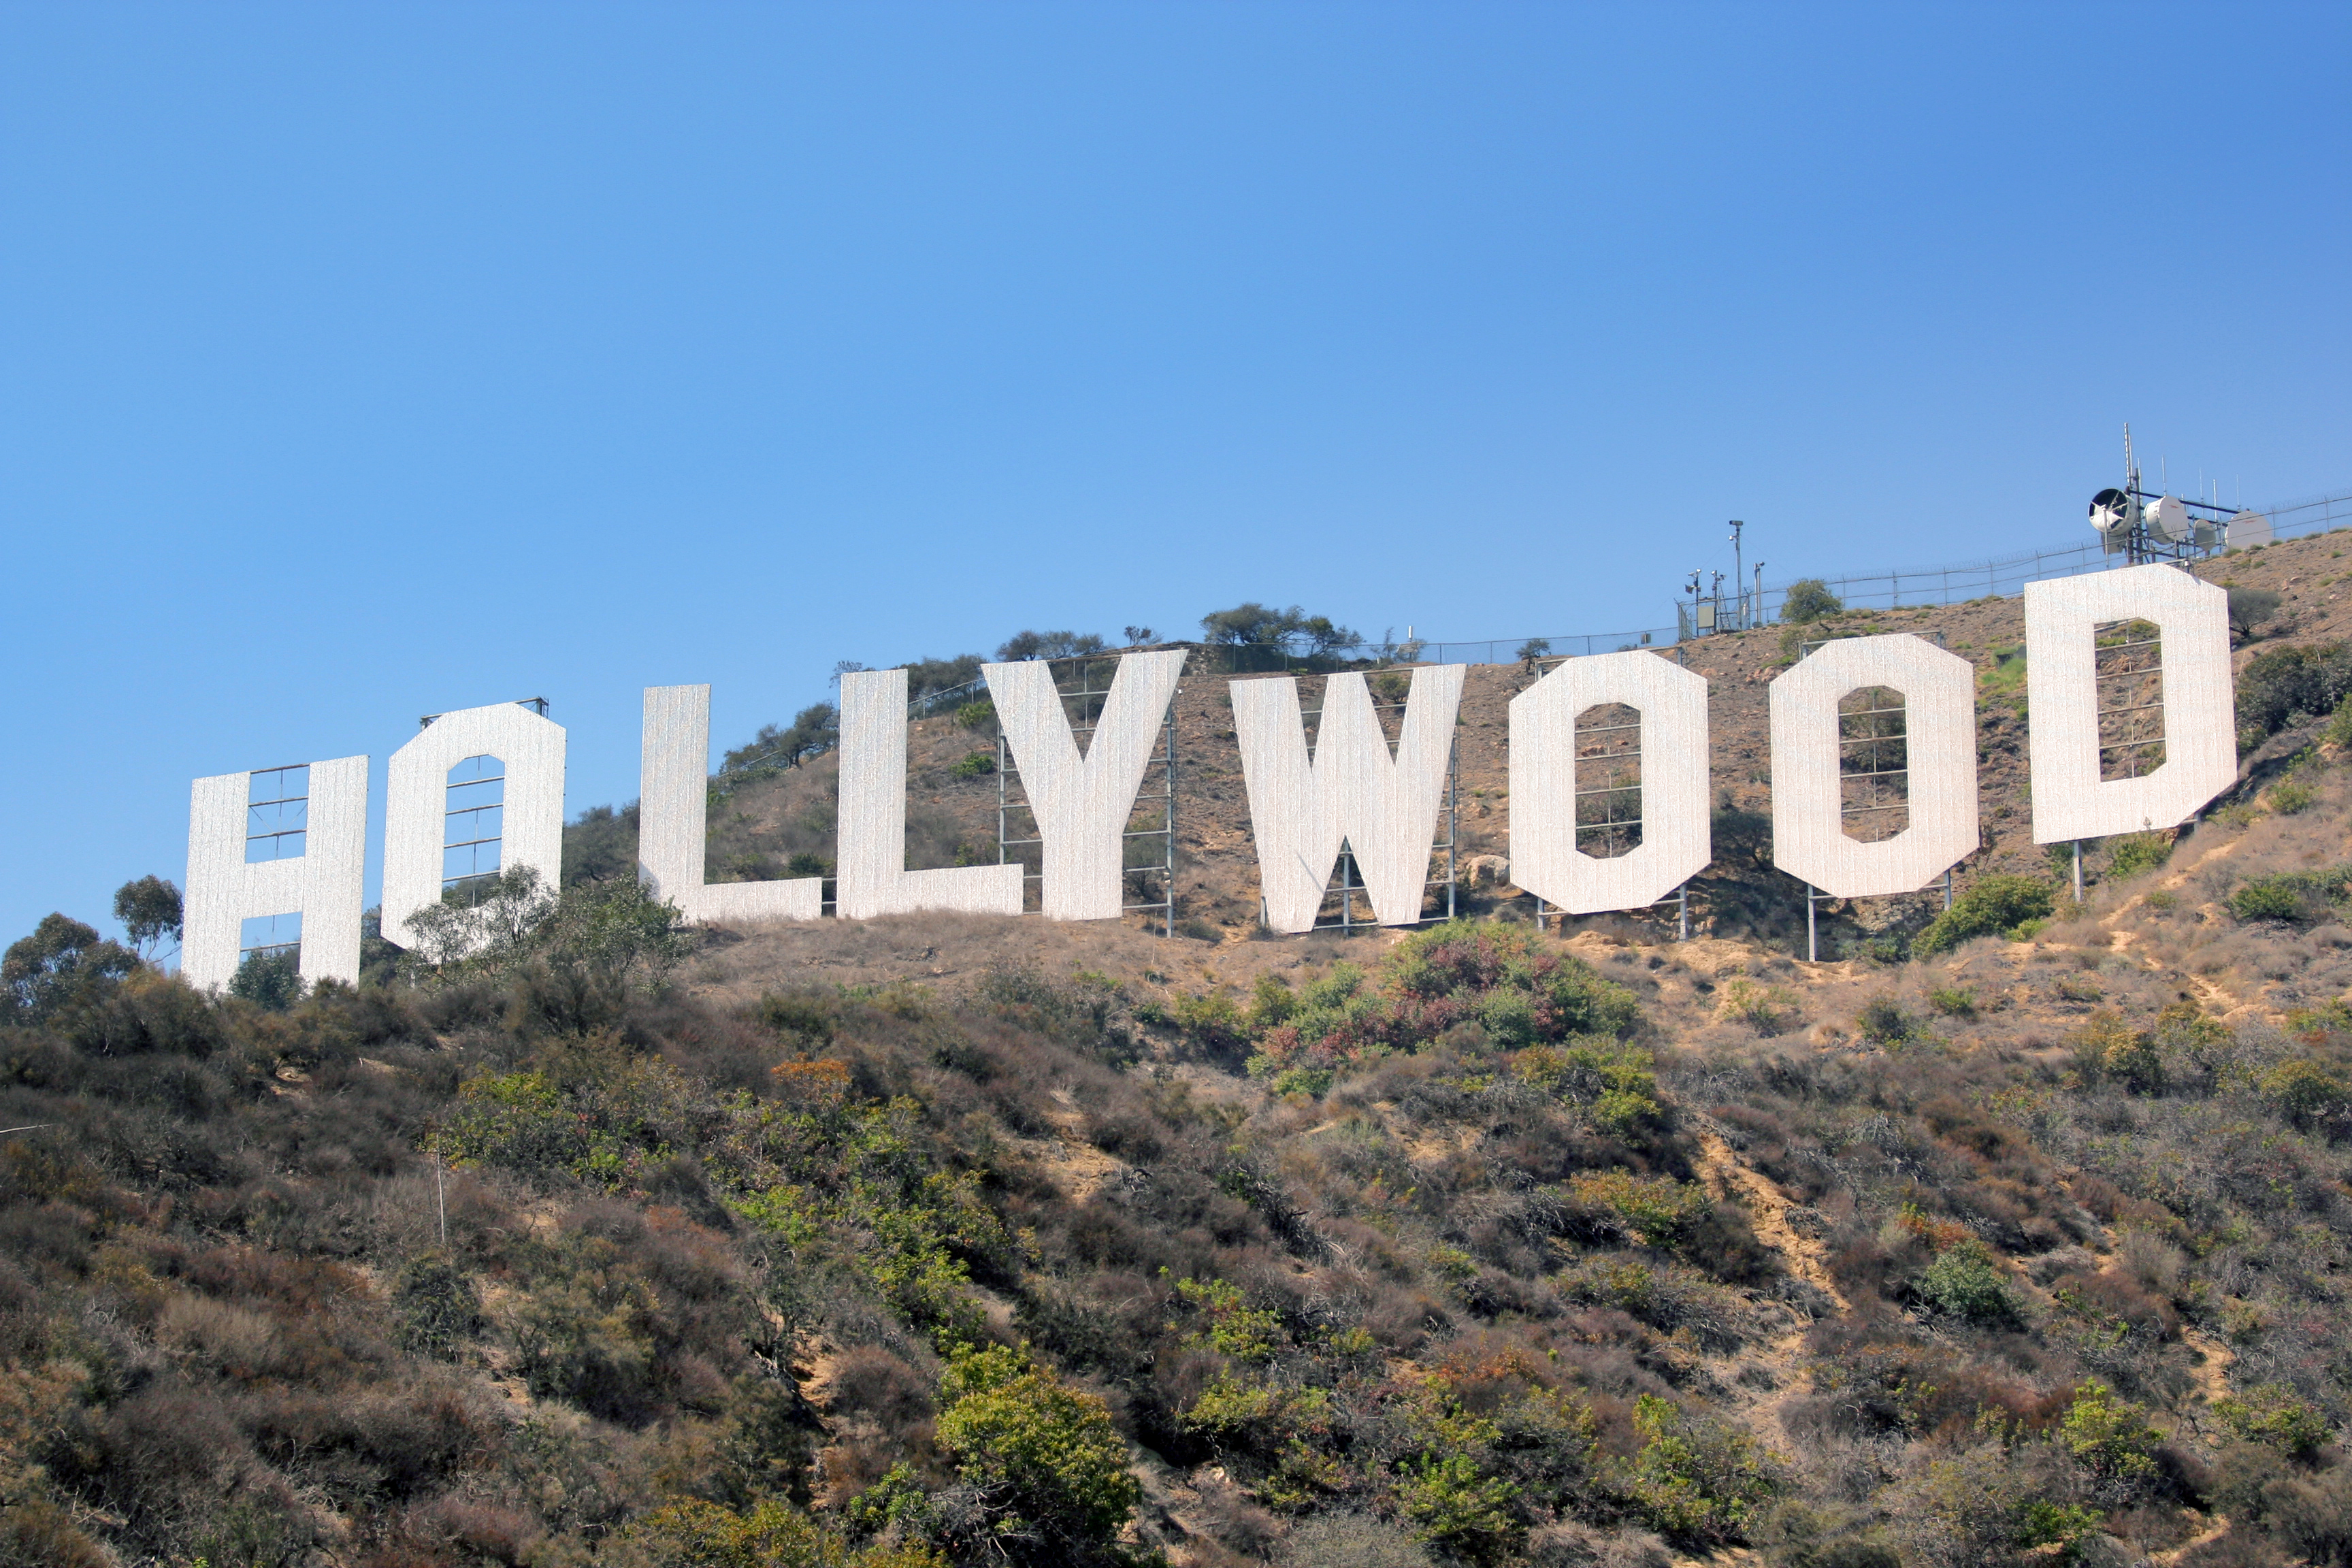 File:HollywoodSign.jpg - Wikipedia